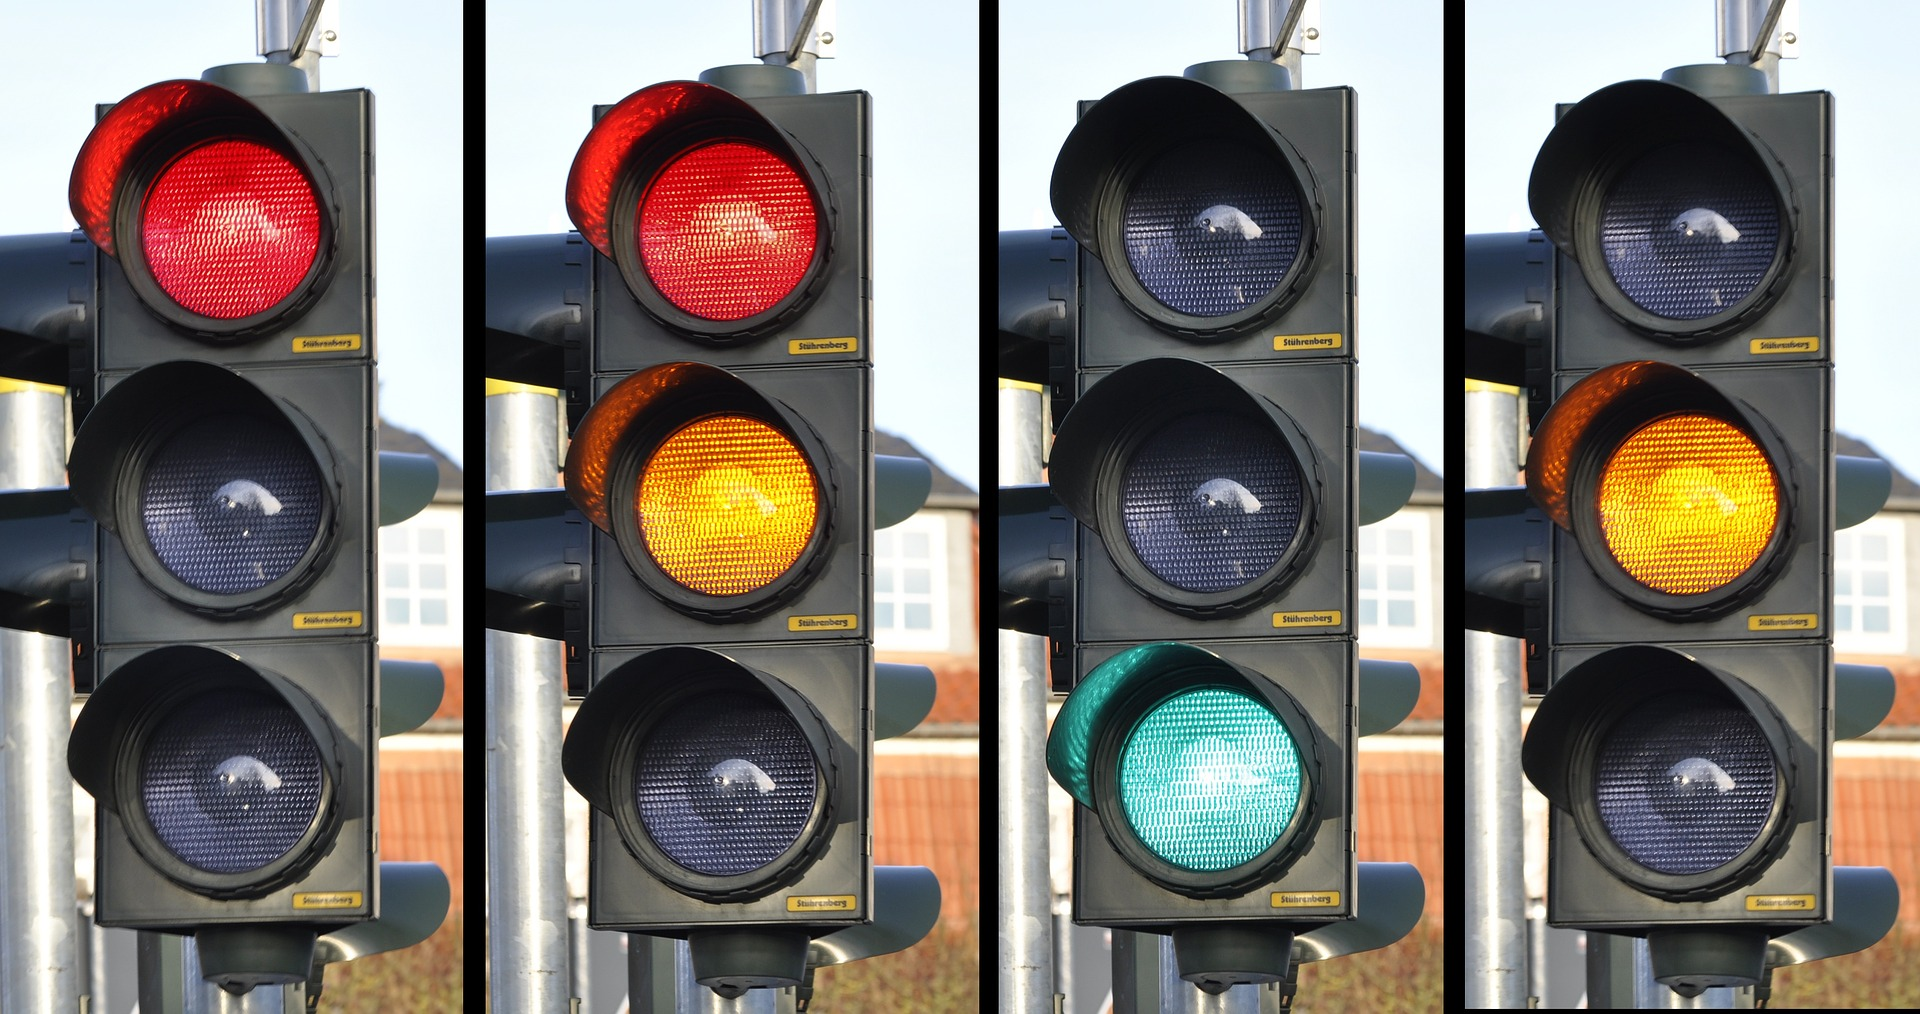 traffic-light-876056_1920.jpg